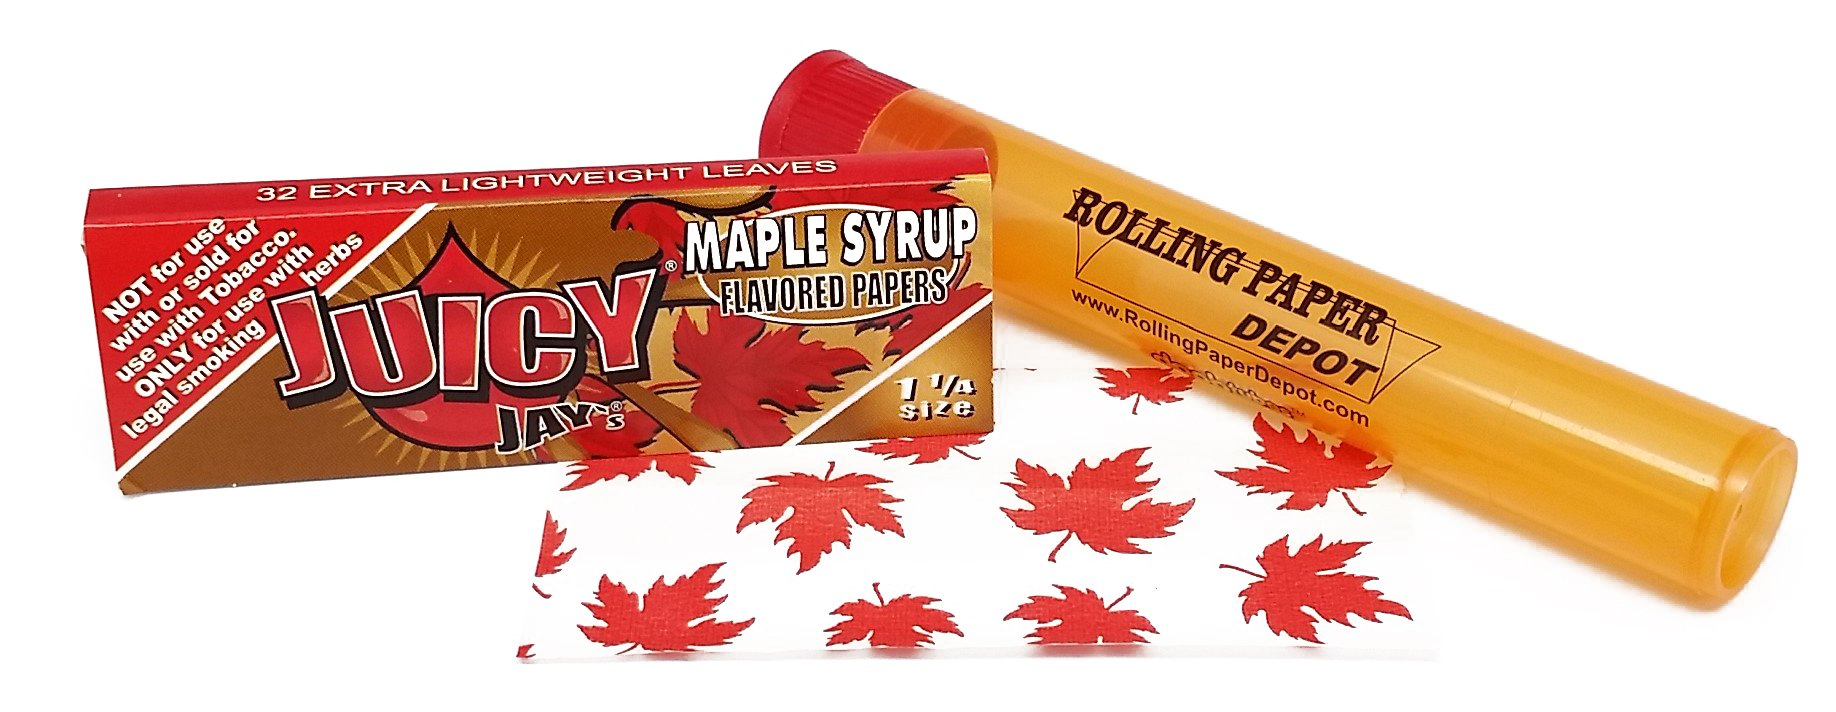 Amazon Com Juicy Jay S 1 1 4 Rolling Papers Chocolate